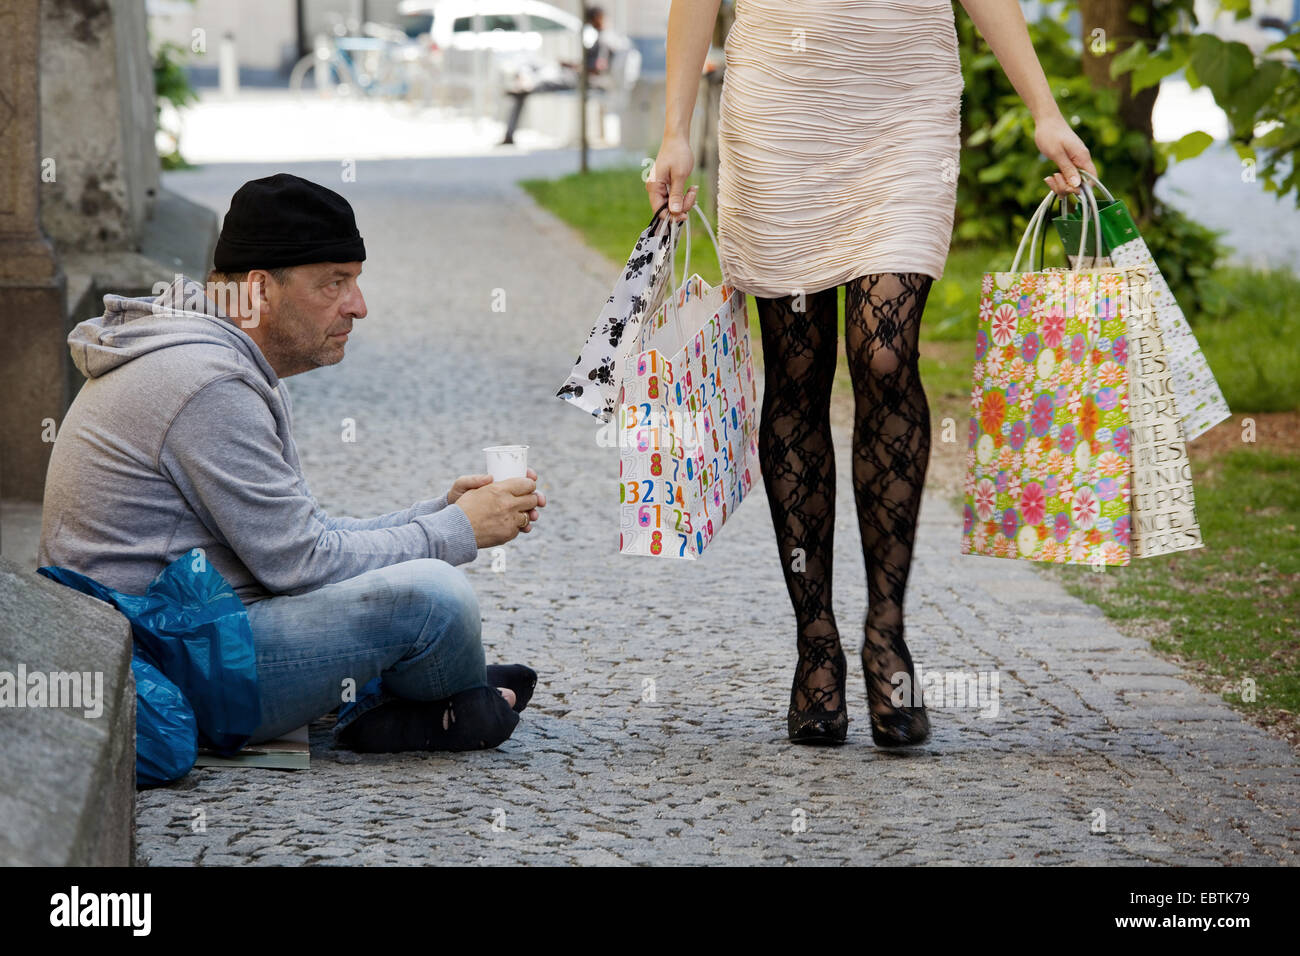 unemployed beggars living on the street, rich young woman with shopping bags passing ihn, Germany - Stock Image